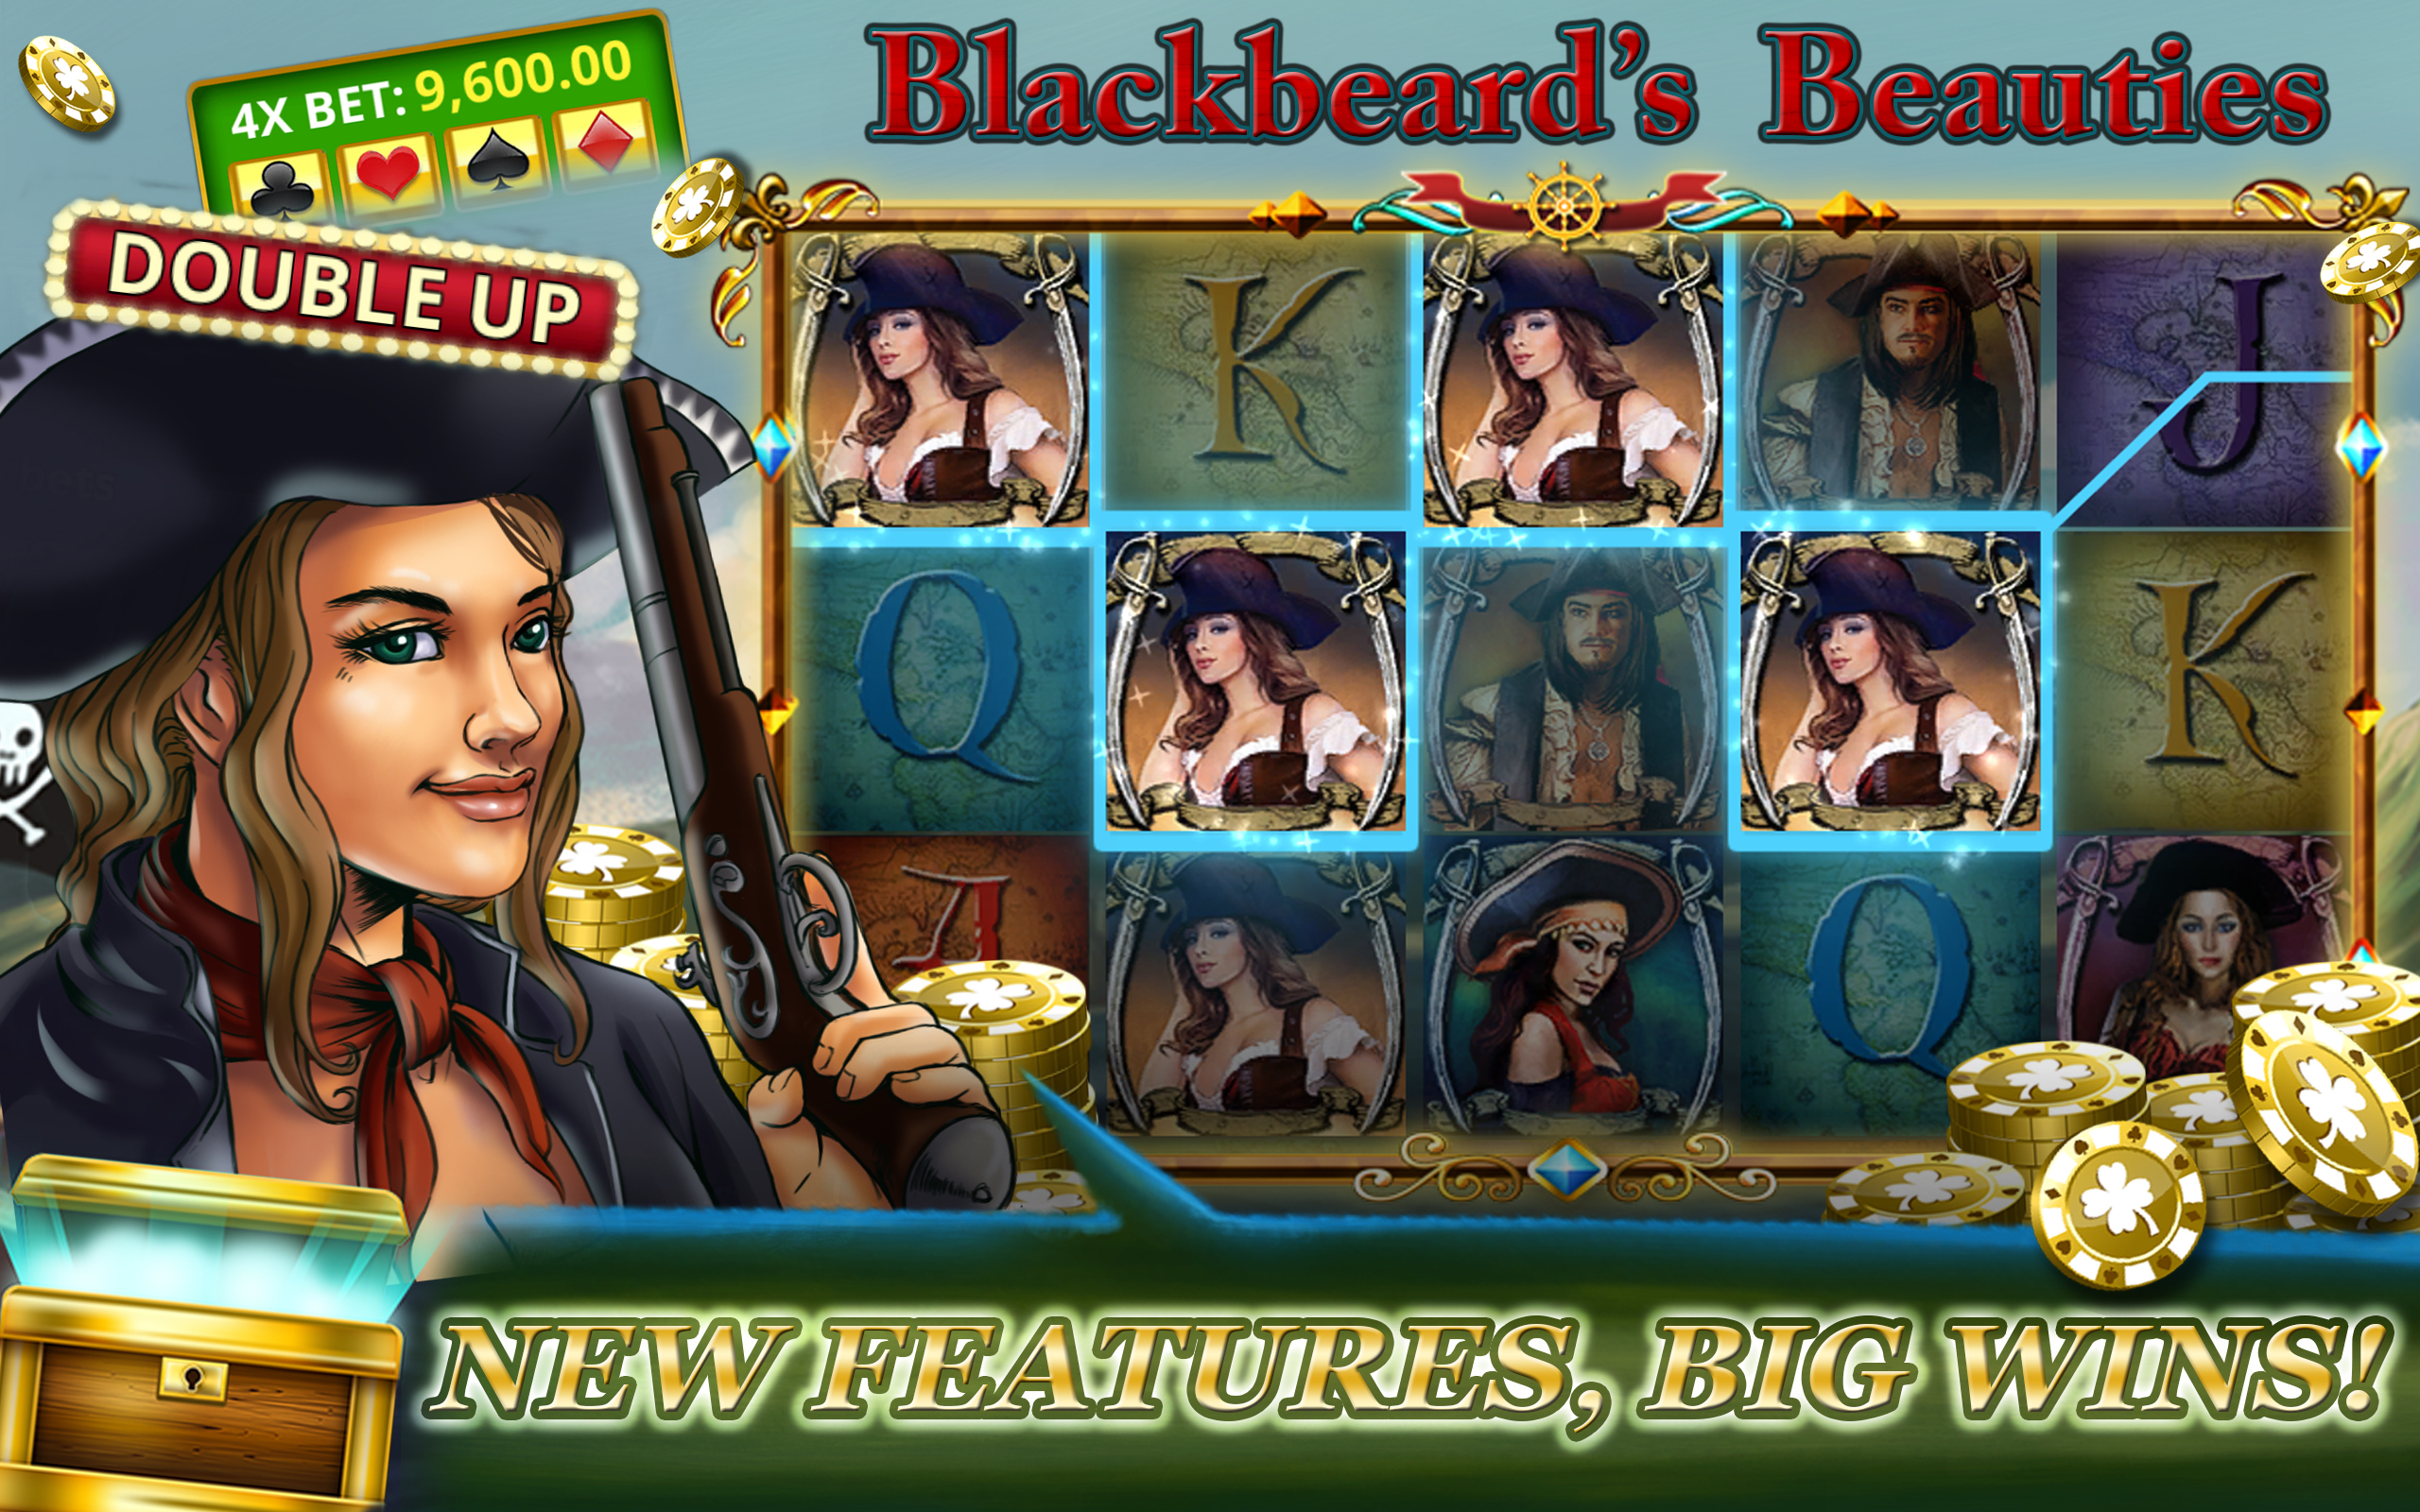 slots romance neue freie spielautomaten apps. Black Bedroom Furniture Sets. Home Design Ideas